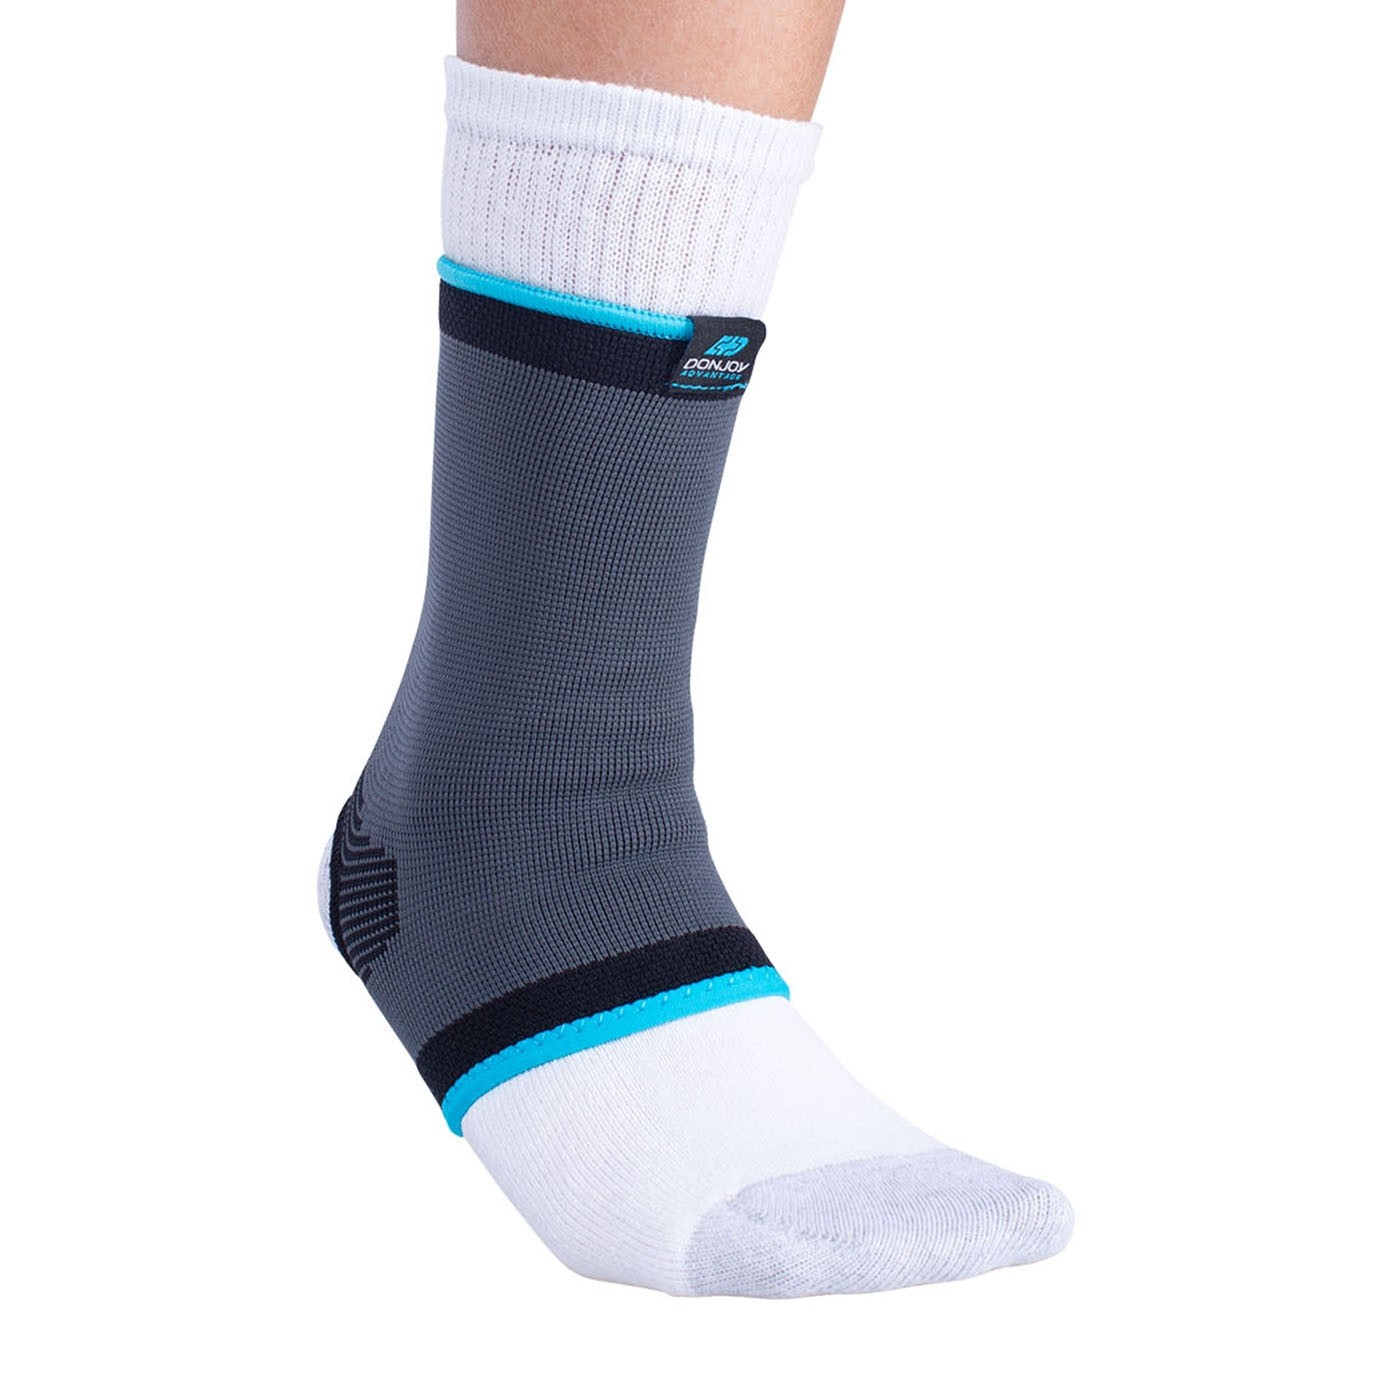 DonJoy Advantage Elastic Ankle Sleeve